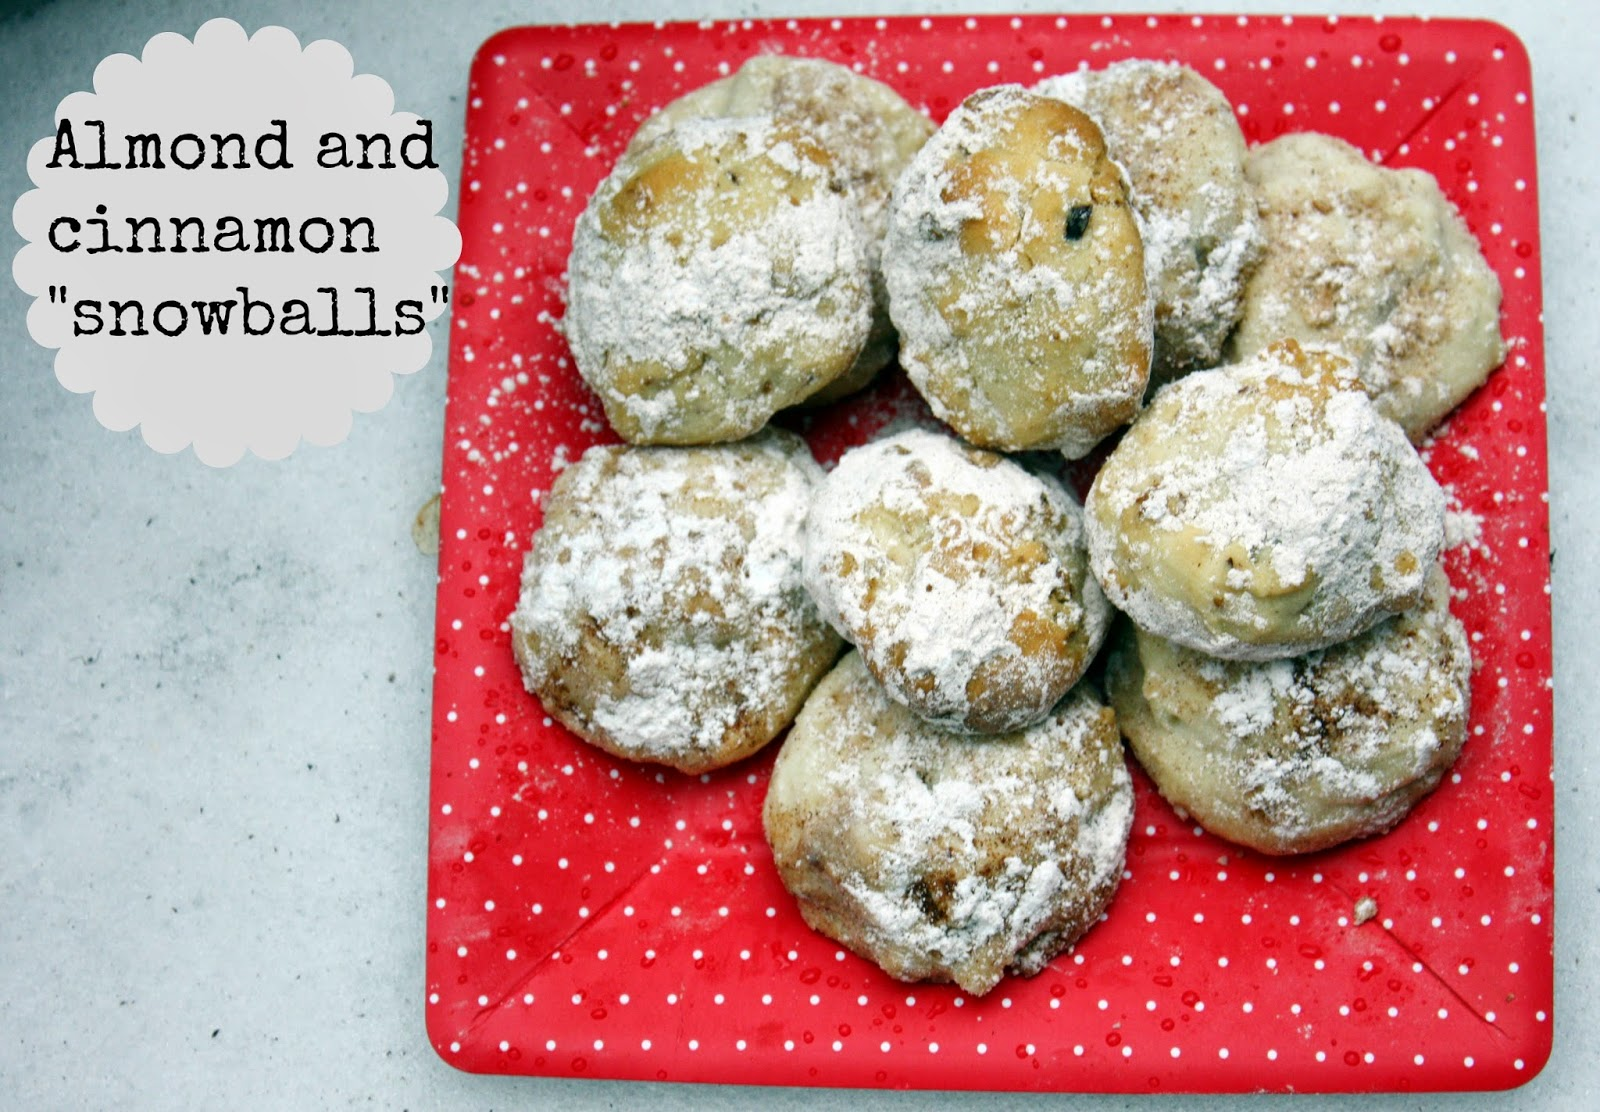 Almond and cinnamon snowball cookies